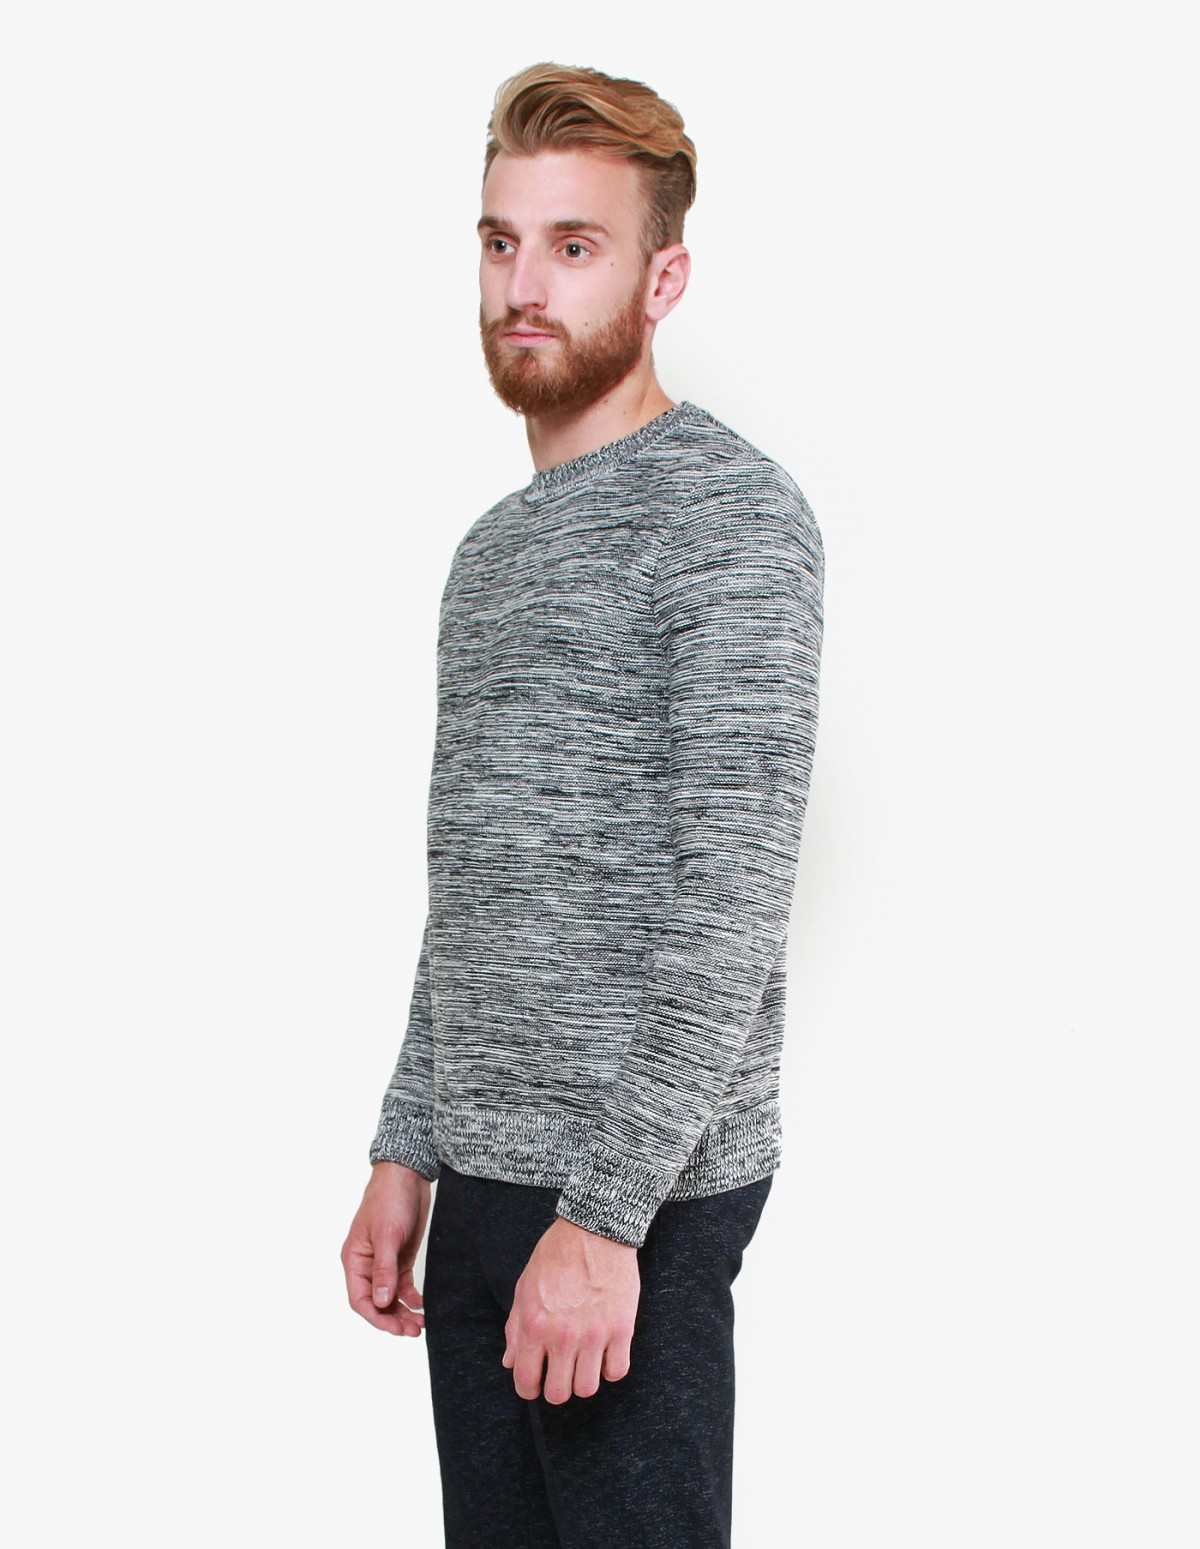 Harmony Wilfried Knit in Black / Off-White